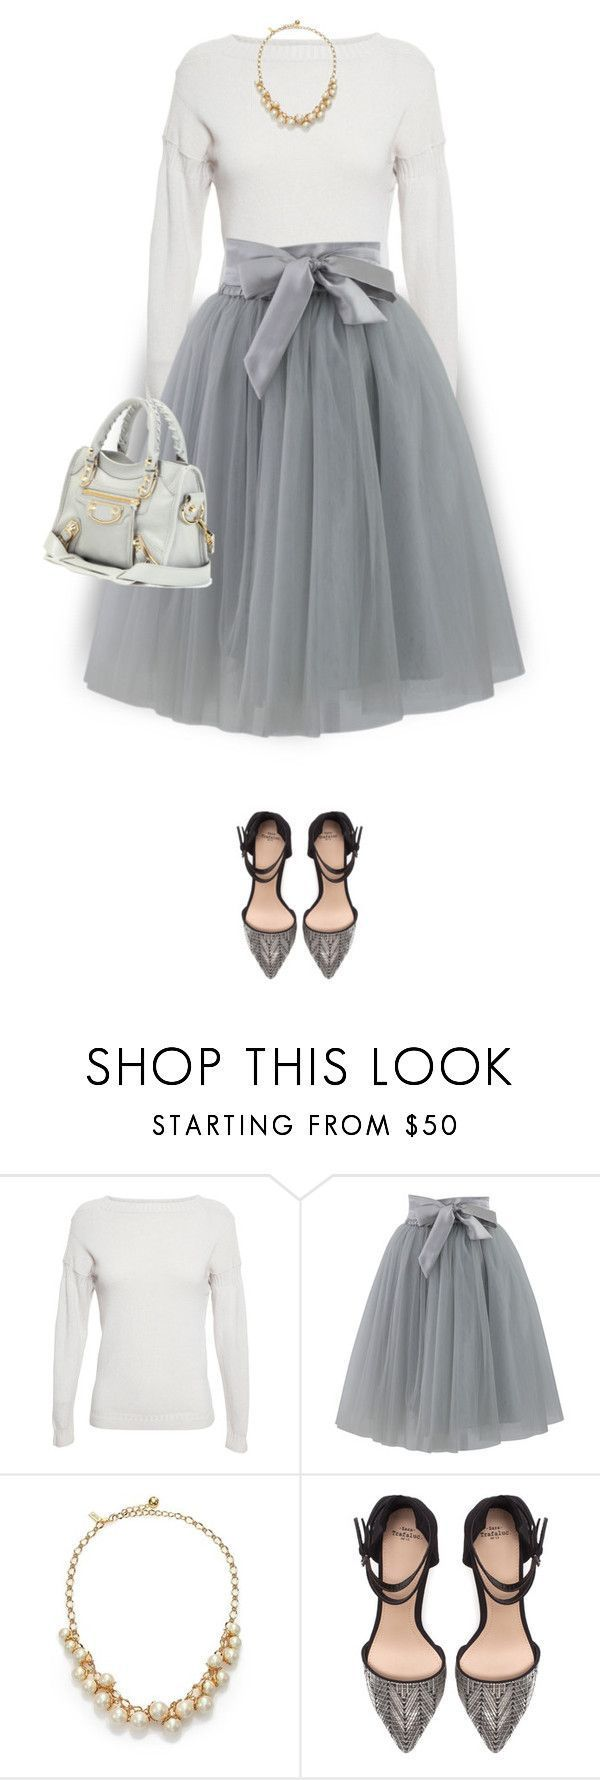 """""""Tulle Skirt"""" by daiscat ❤ liked on Polyvore featuring Burberry, Chicwish, Kate Spade, Zara and Balenciaga"""